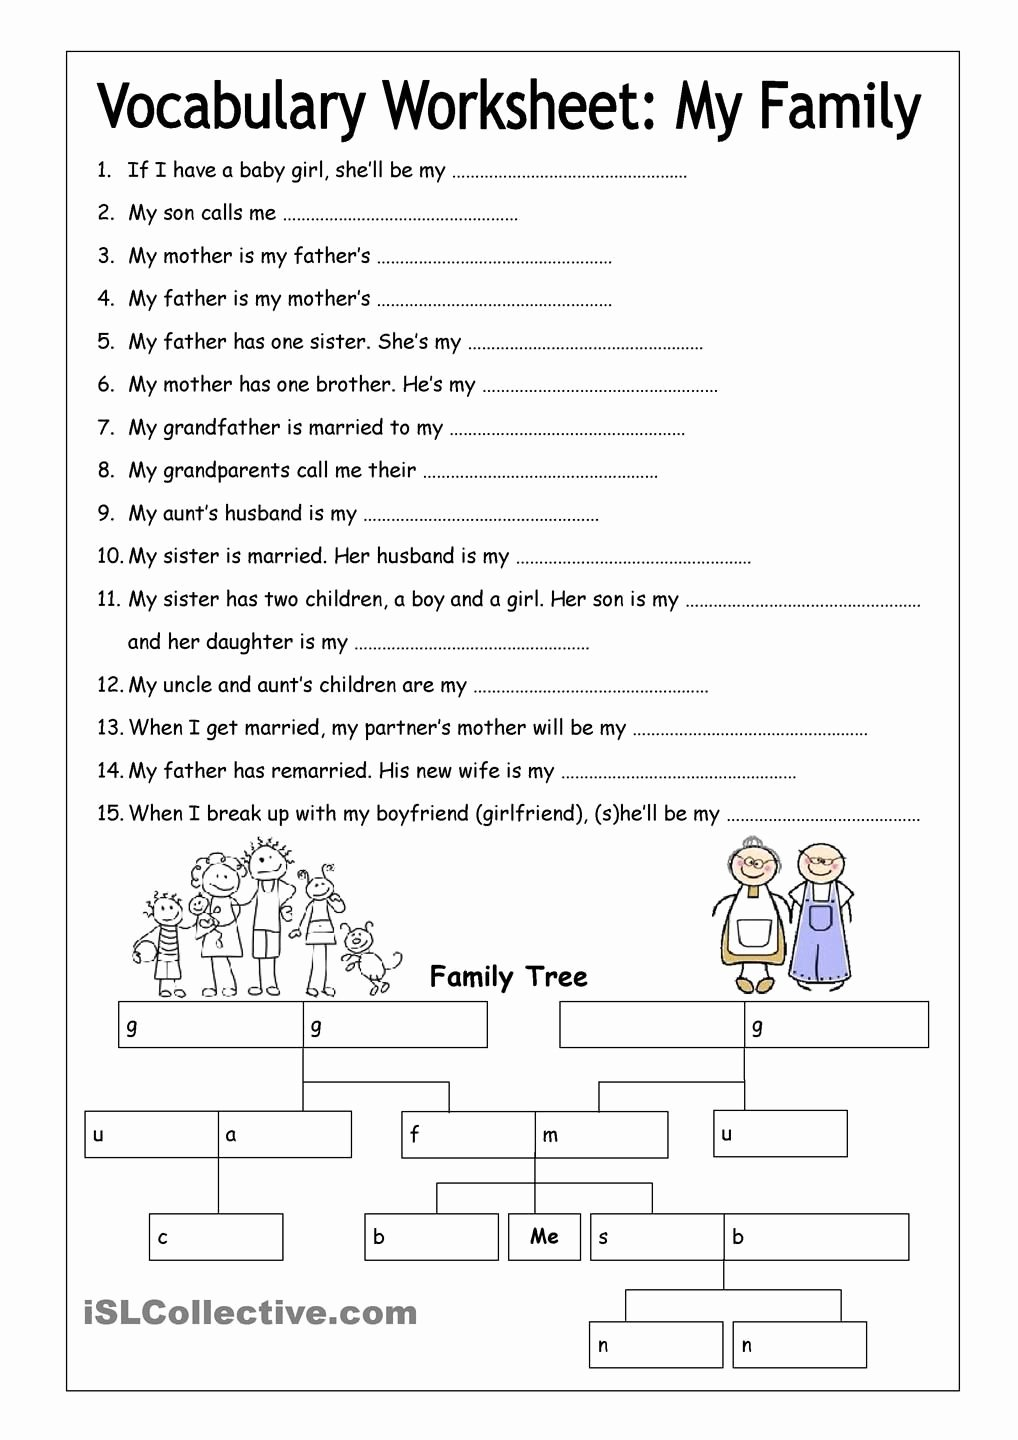 Family Tree Worksheet Printable Inspirational Vocabulary Worksheet My Family Medium